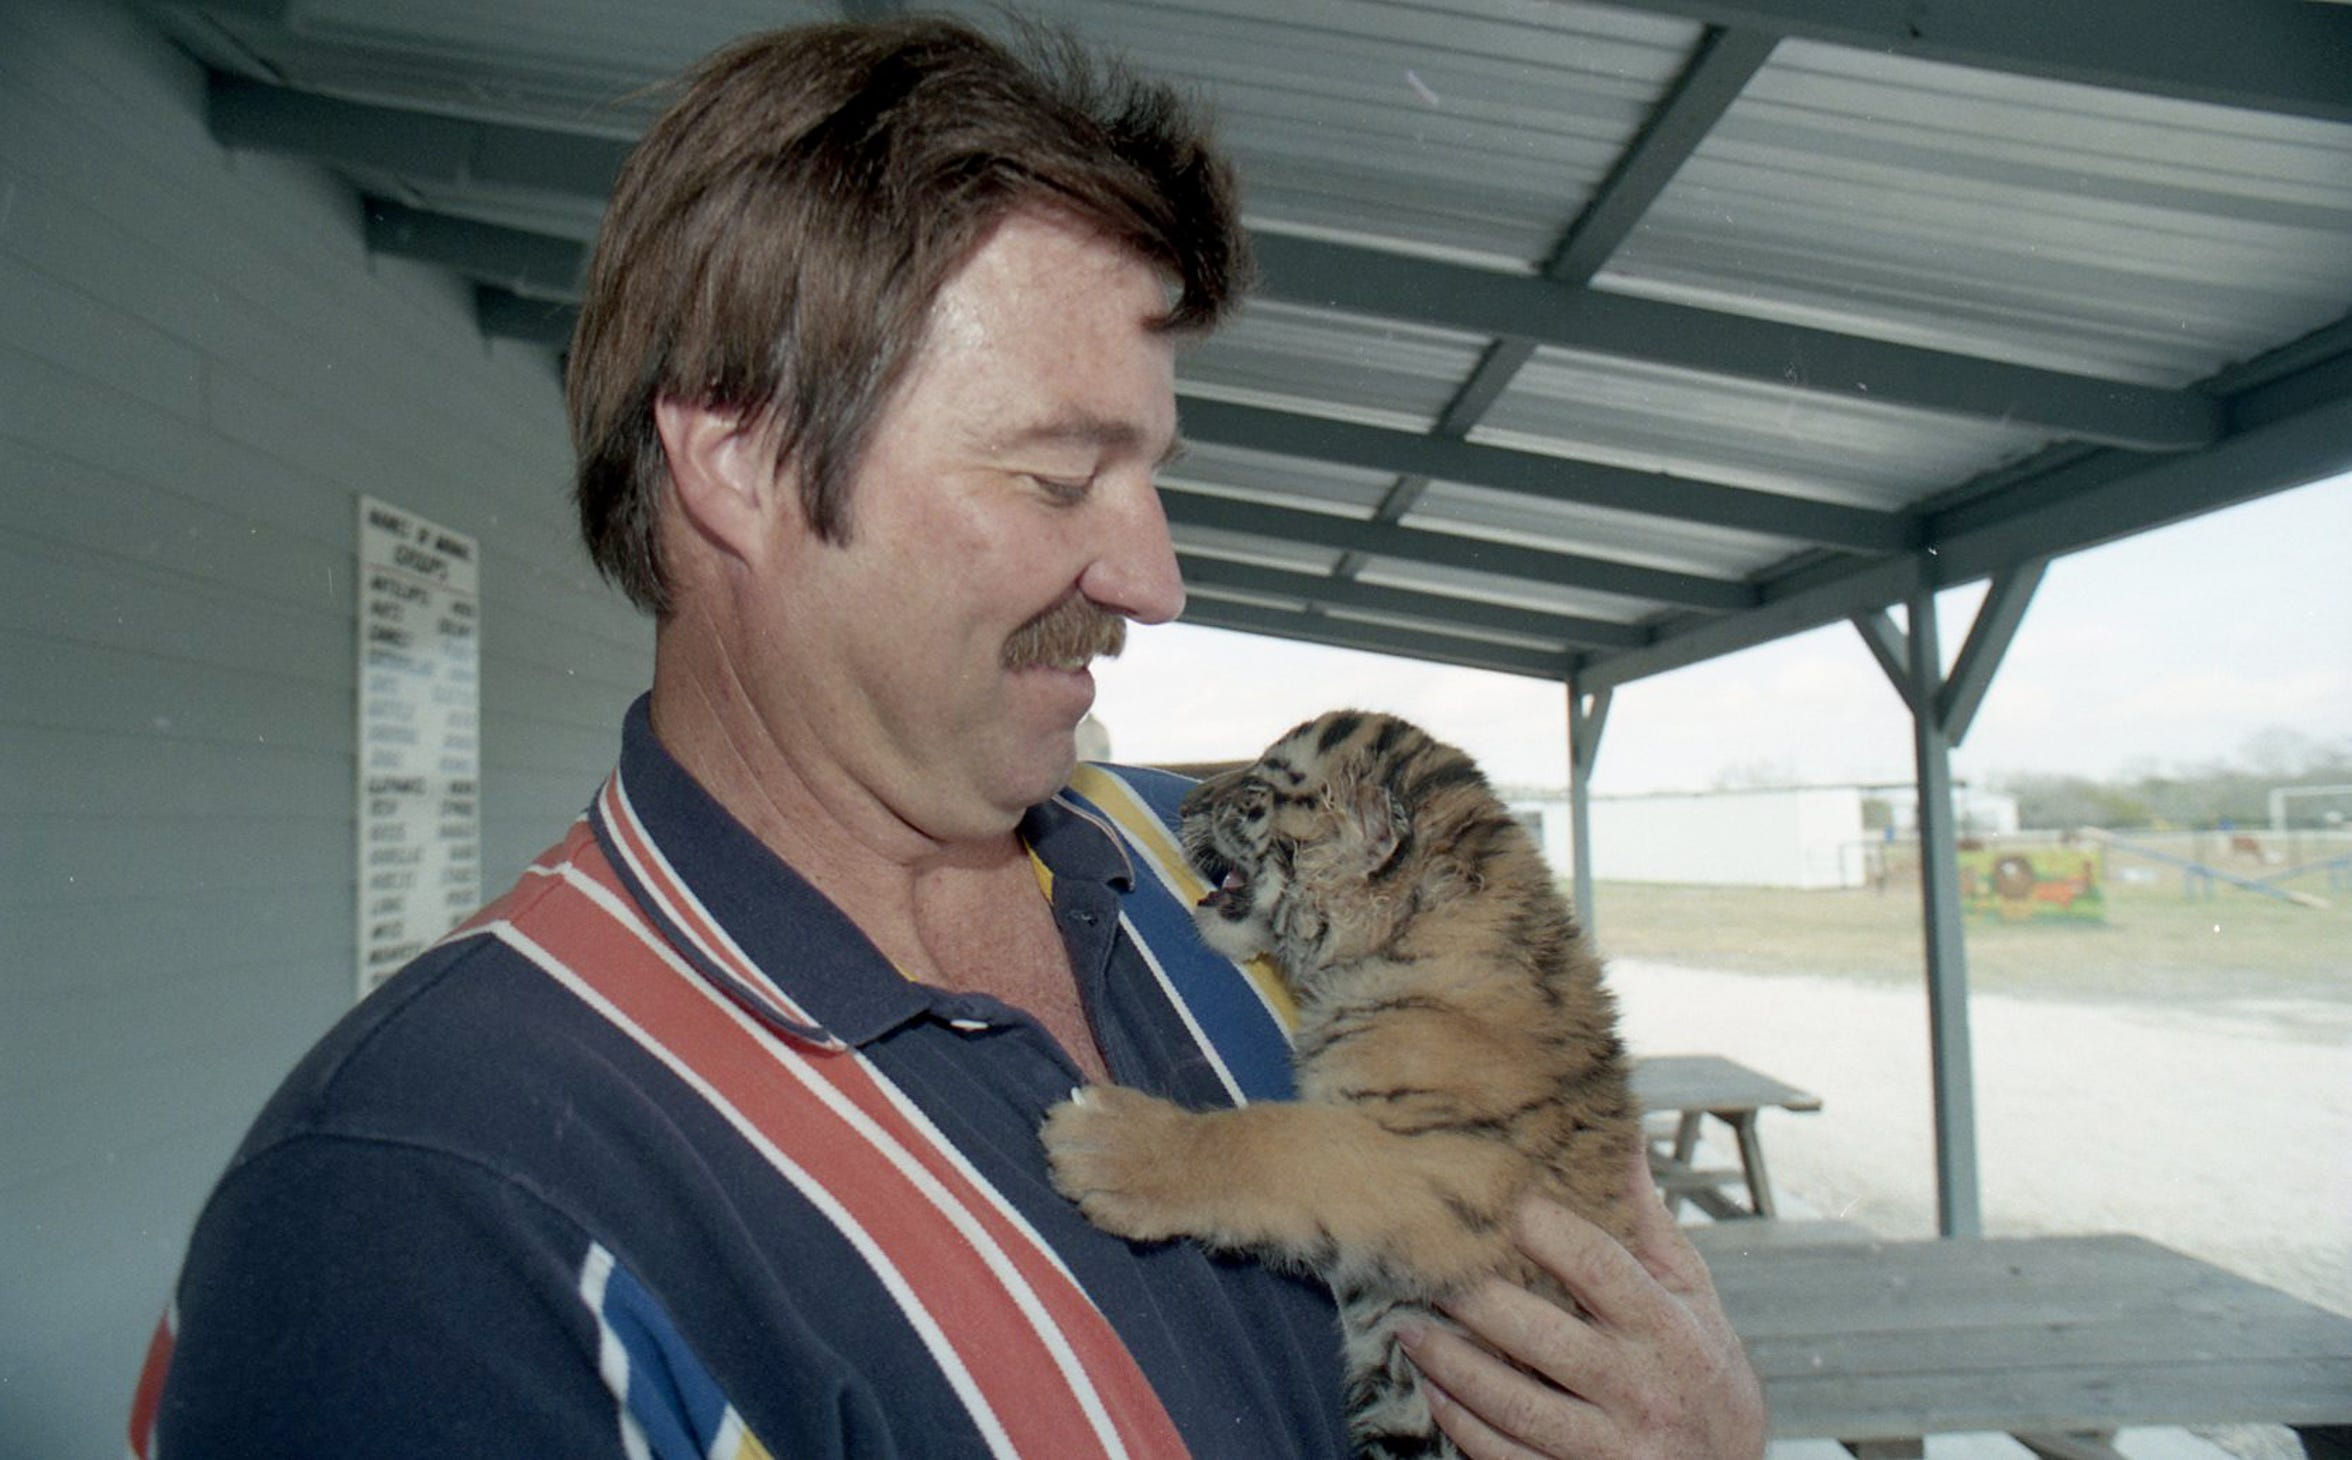 Wayne Shambo holds a one-month-old baby tiger that they will be raising at Wayne's World Safari in February 1999.